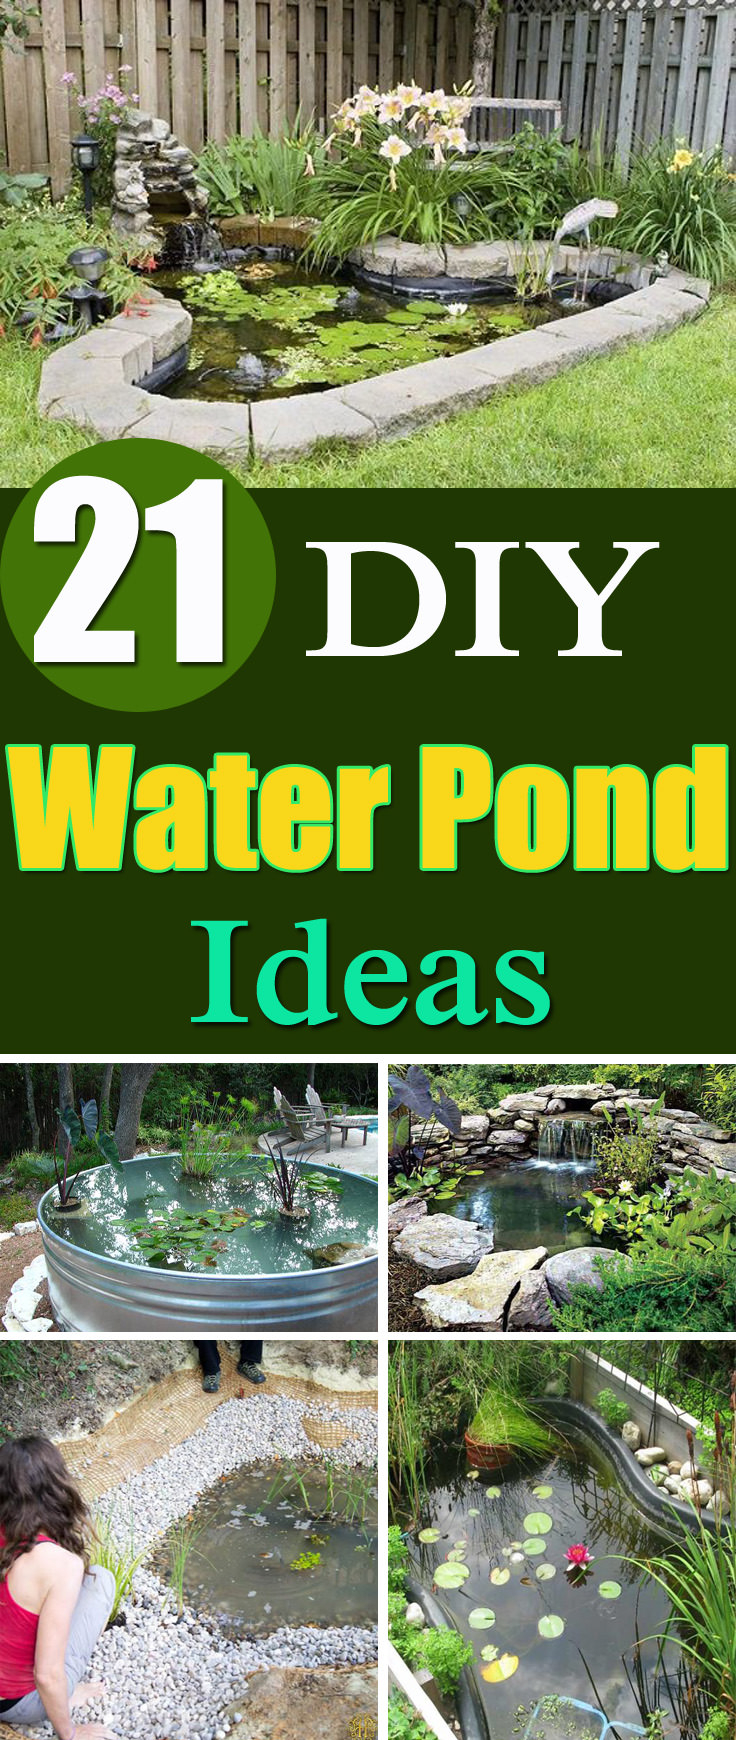 21 Diy Water Pond Ideas Diy Water Gardens For Backyards Balcony inside 11 Some of the Coolest Initiatives of How to Upgrade Backyard Small Pond Ideas